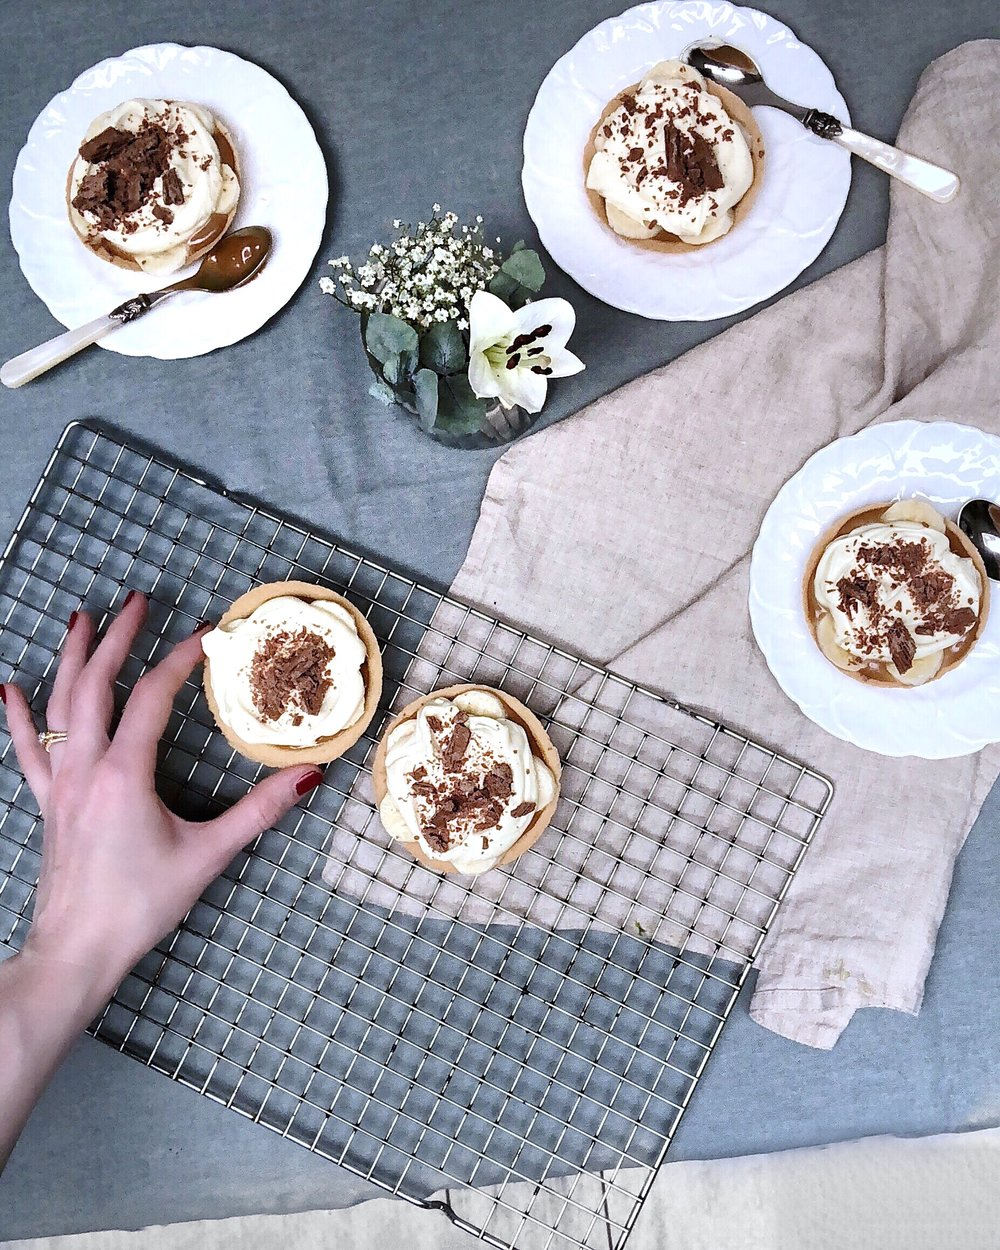 banana pudding with caramel and cream - desert island dishes - Gizzi Erskine - Margie Nomura